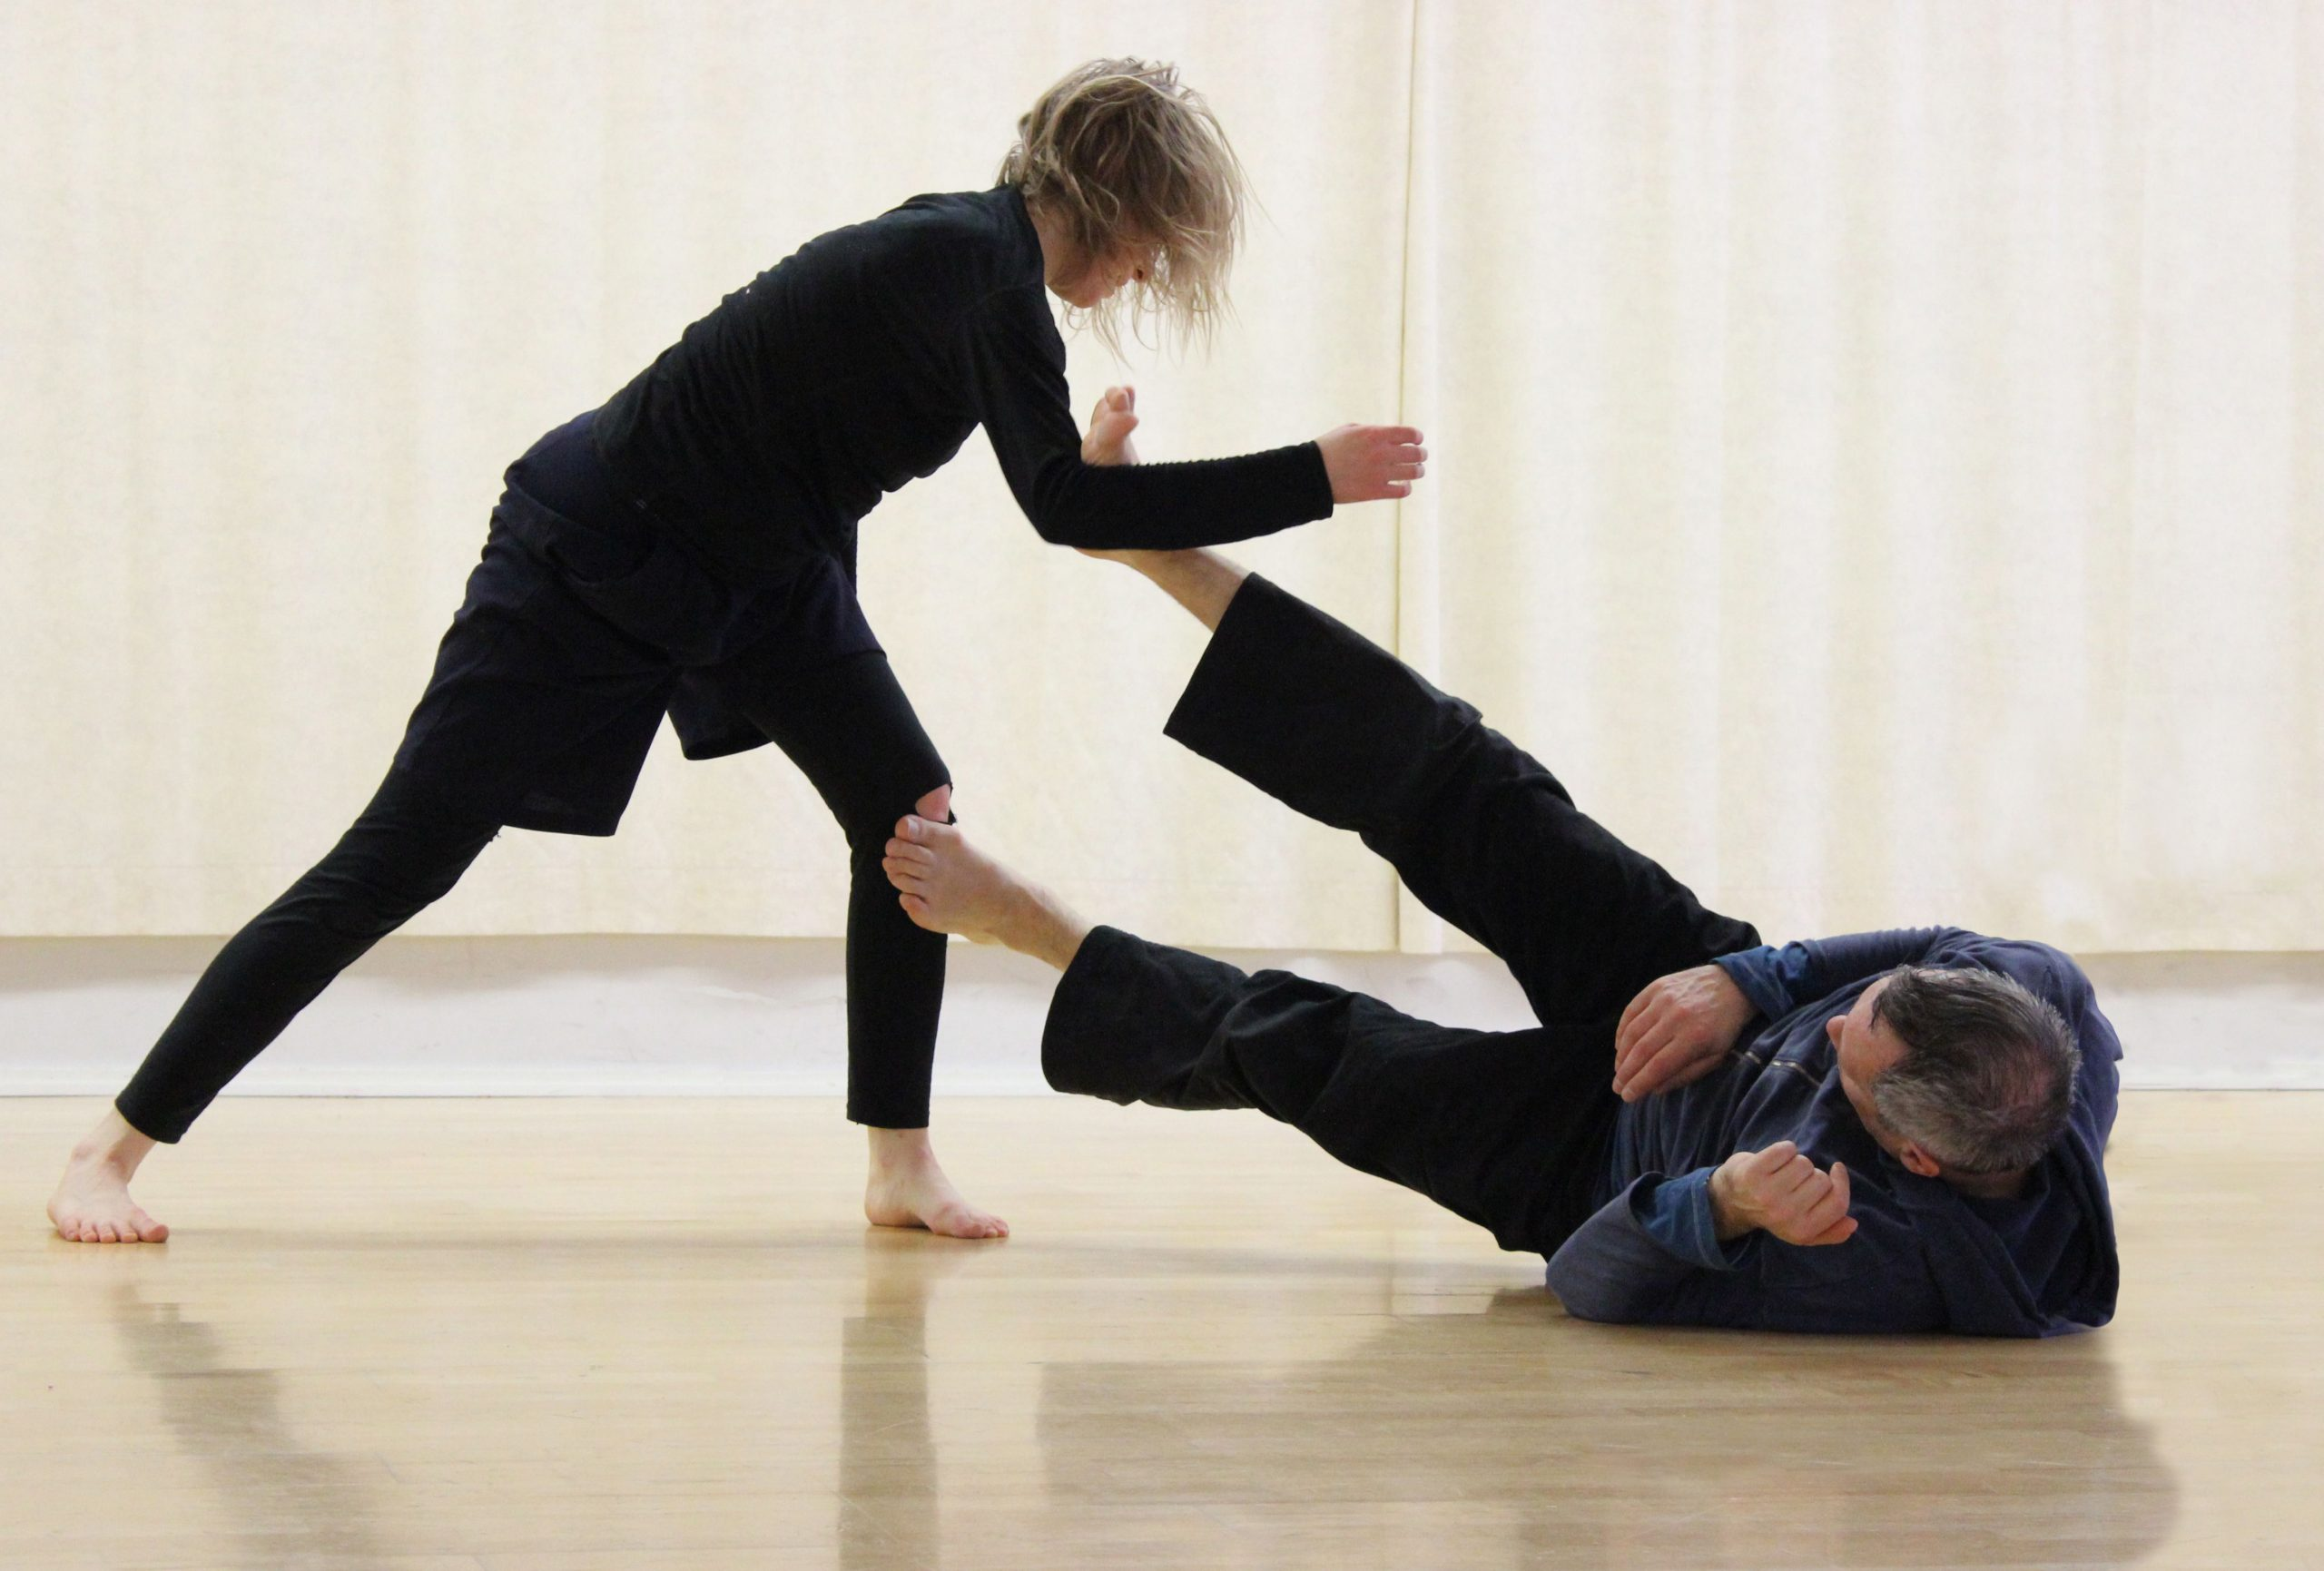 dancing contact improvisation